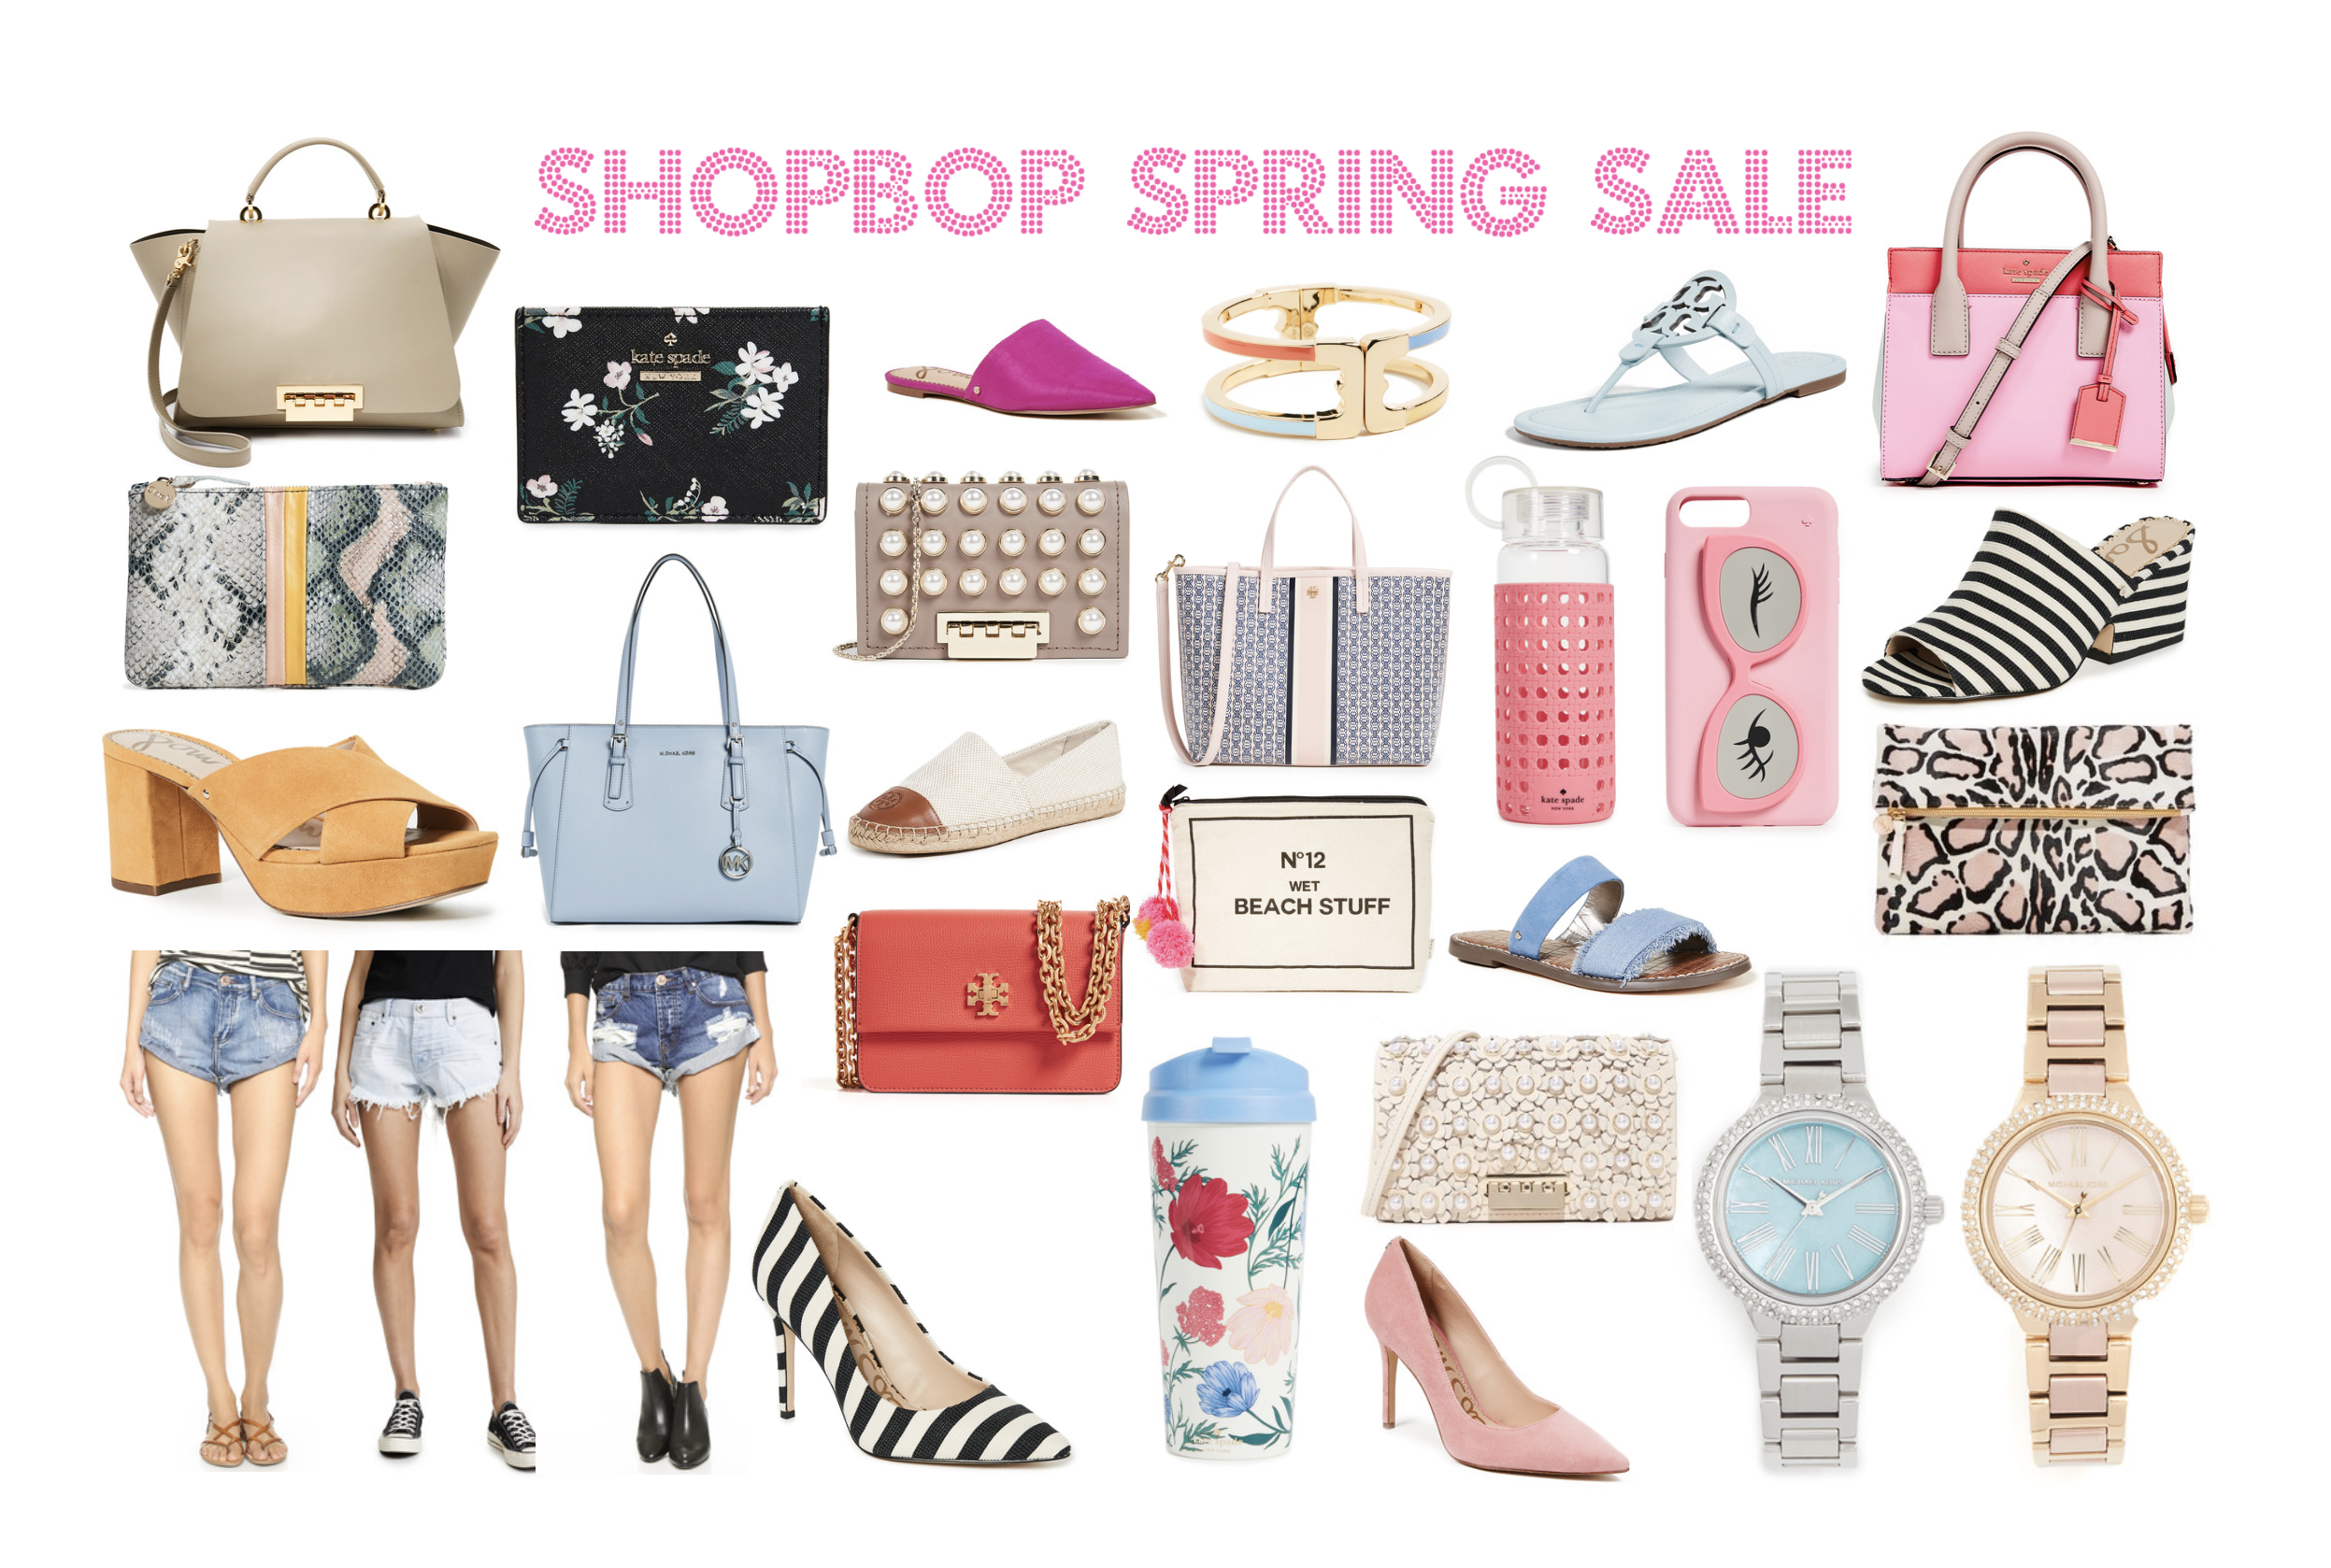 Shopbop Spring Sale, Shopbop Buy More Save More, Spring Sale